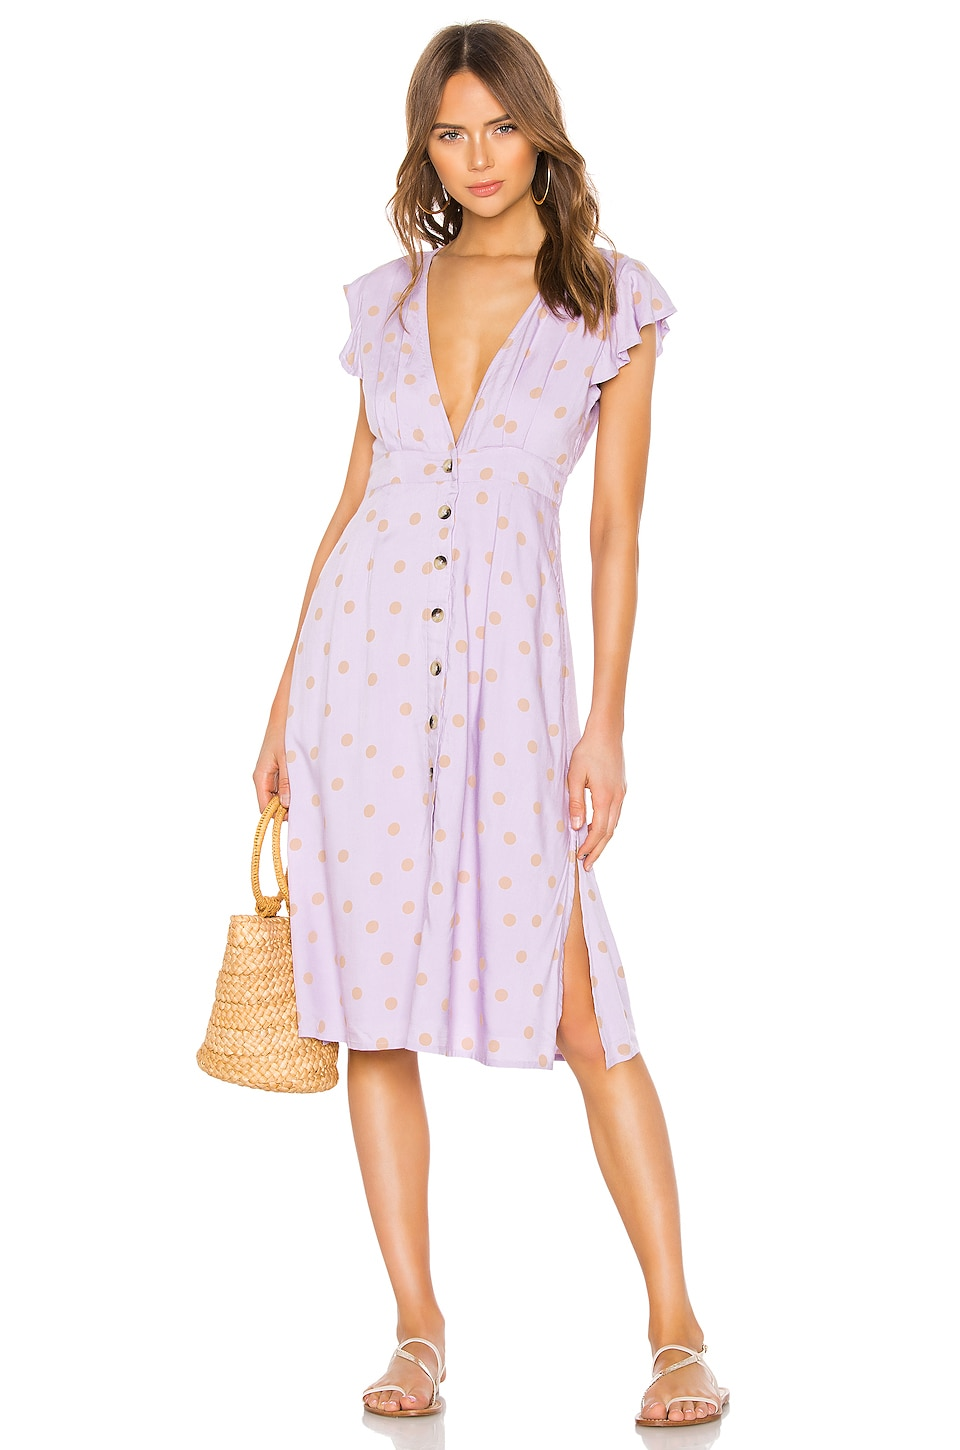 X REVOLVE Jordan Dress             L*SPACE                                                                                                                                         Sale price:                                                                       CA$ 88.47                                                                  Previous price:                                                                       CA$ 195.19 17